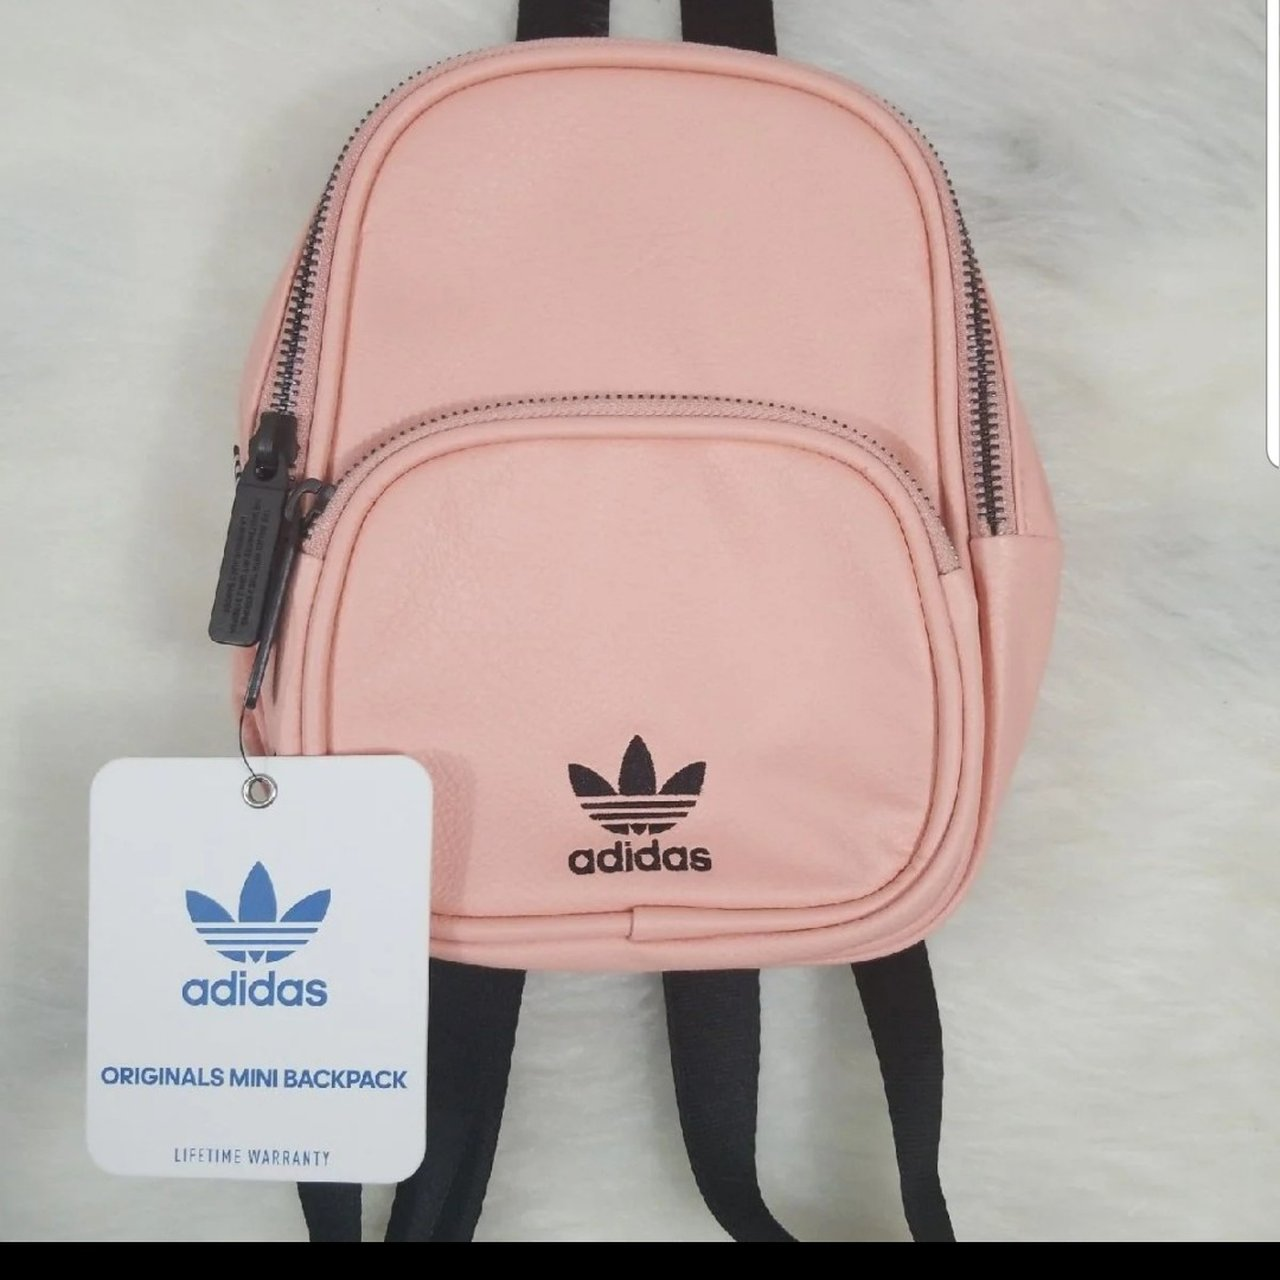 3b17b51850 adidas Originals Faux Leather mini backpack. Features adidas - Depop